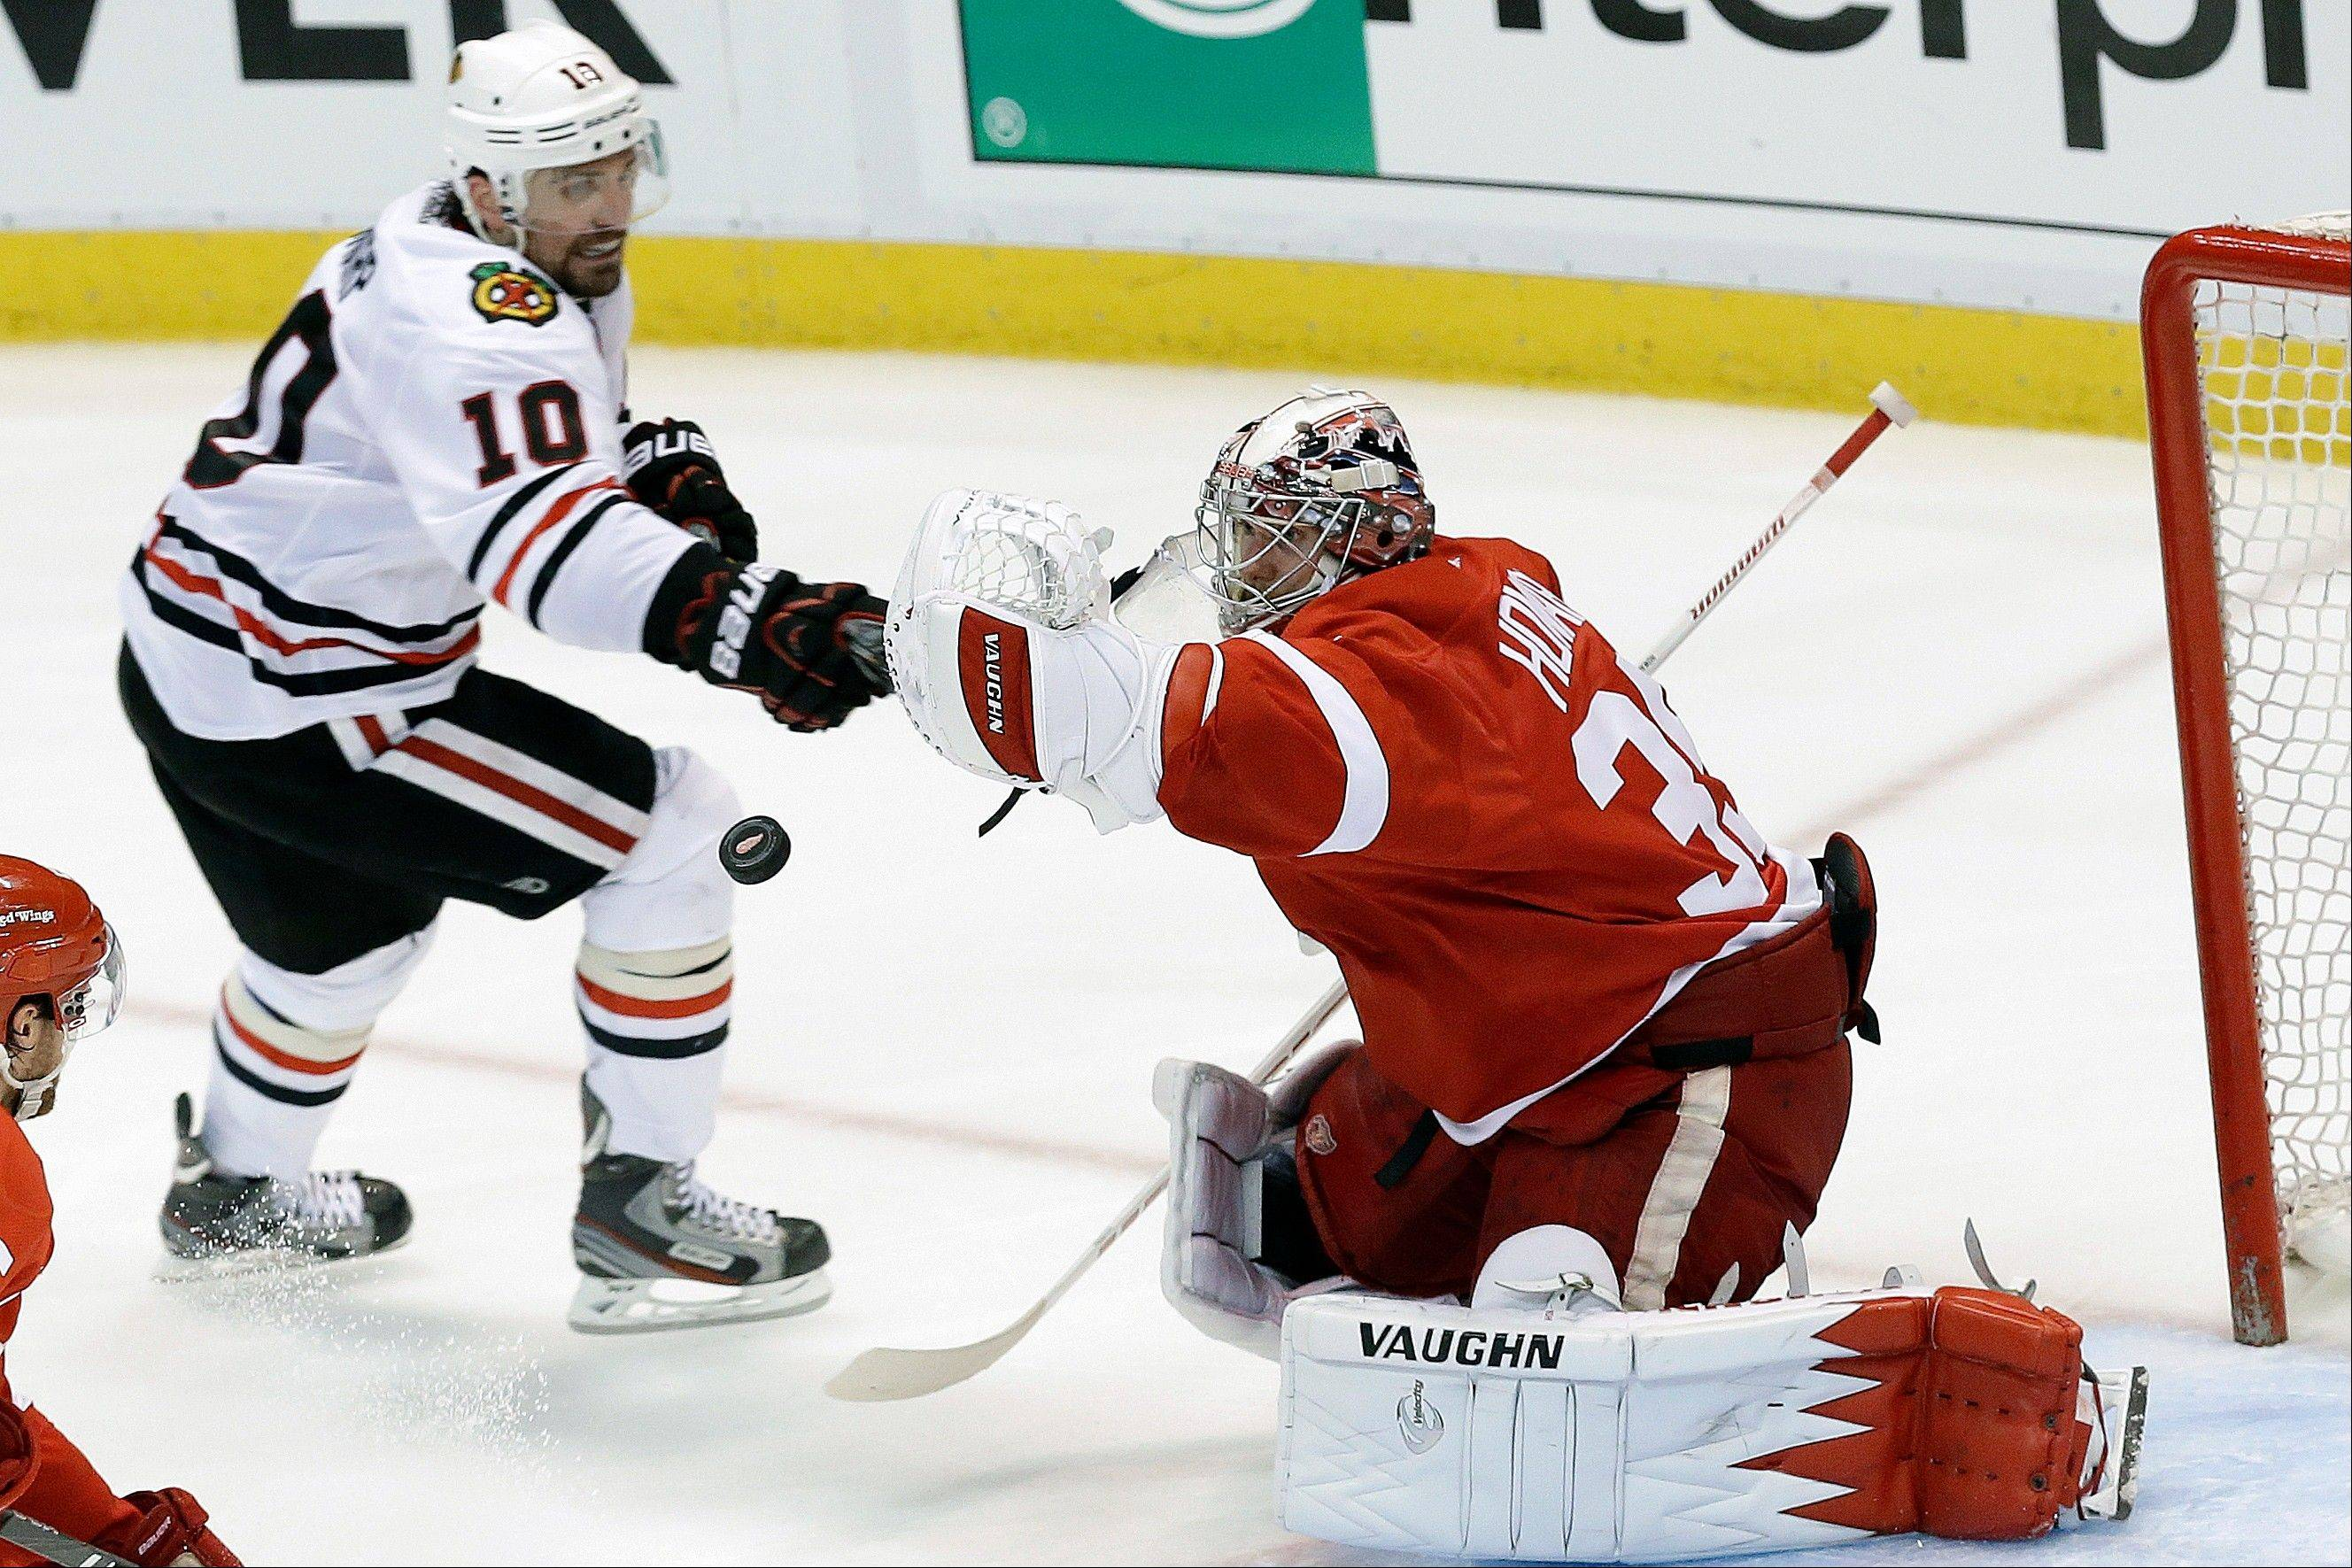 Red Wings goalie Jimmy Howard stops a shot by the Blackhawks' Patrick Sharp during the third period Monday night.